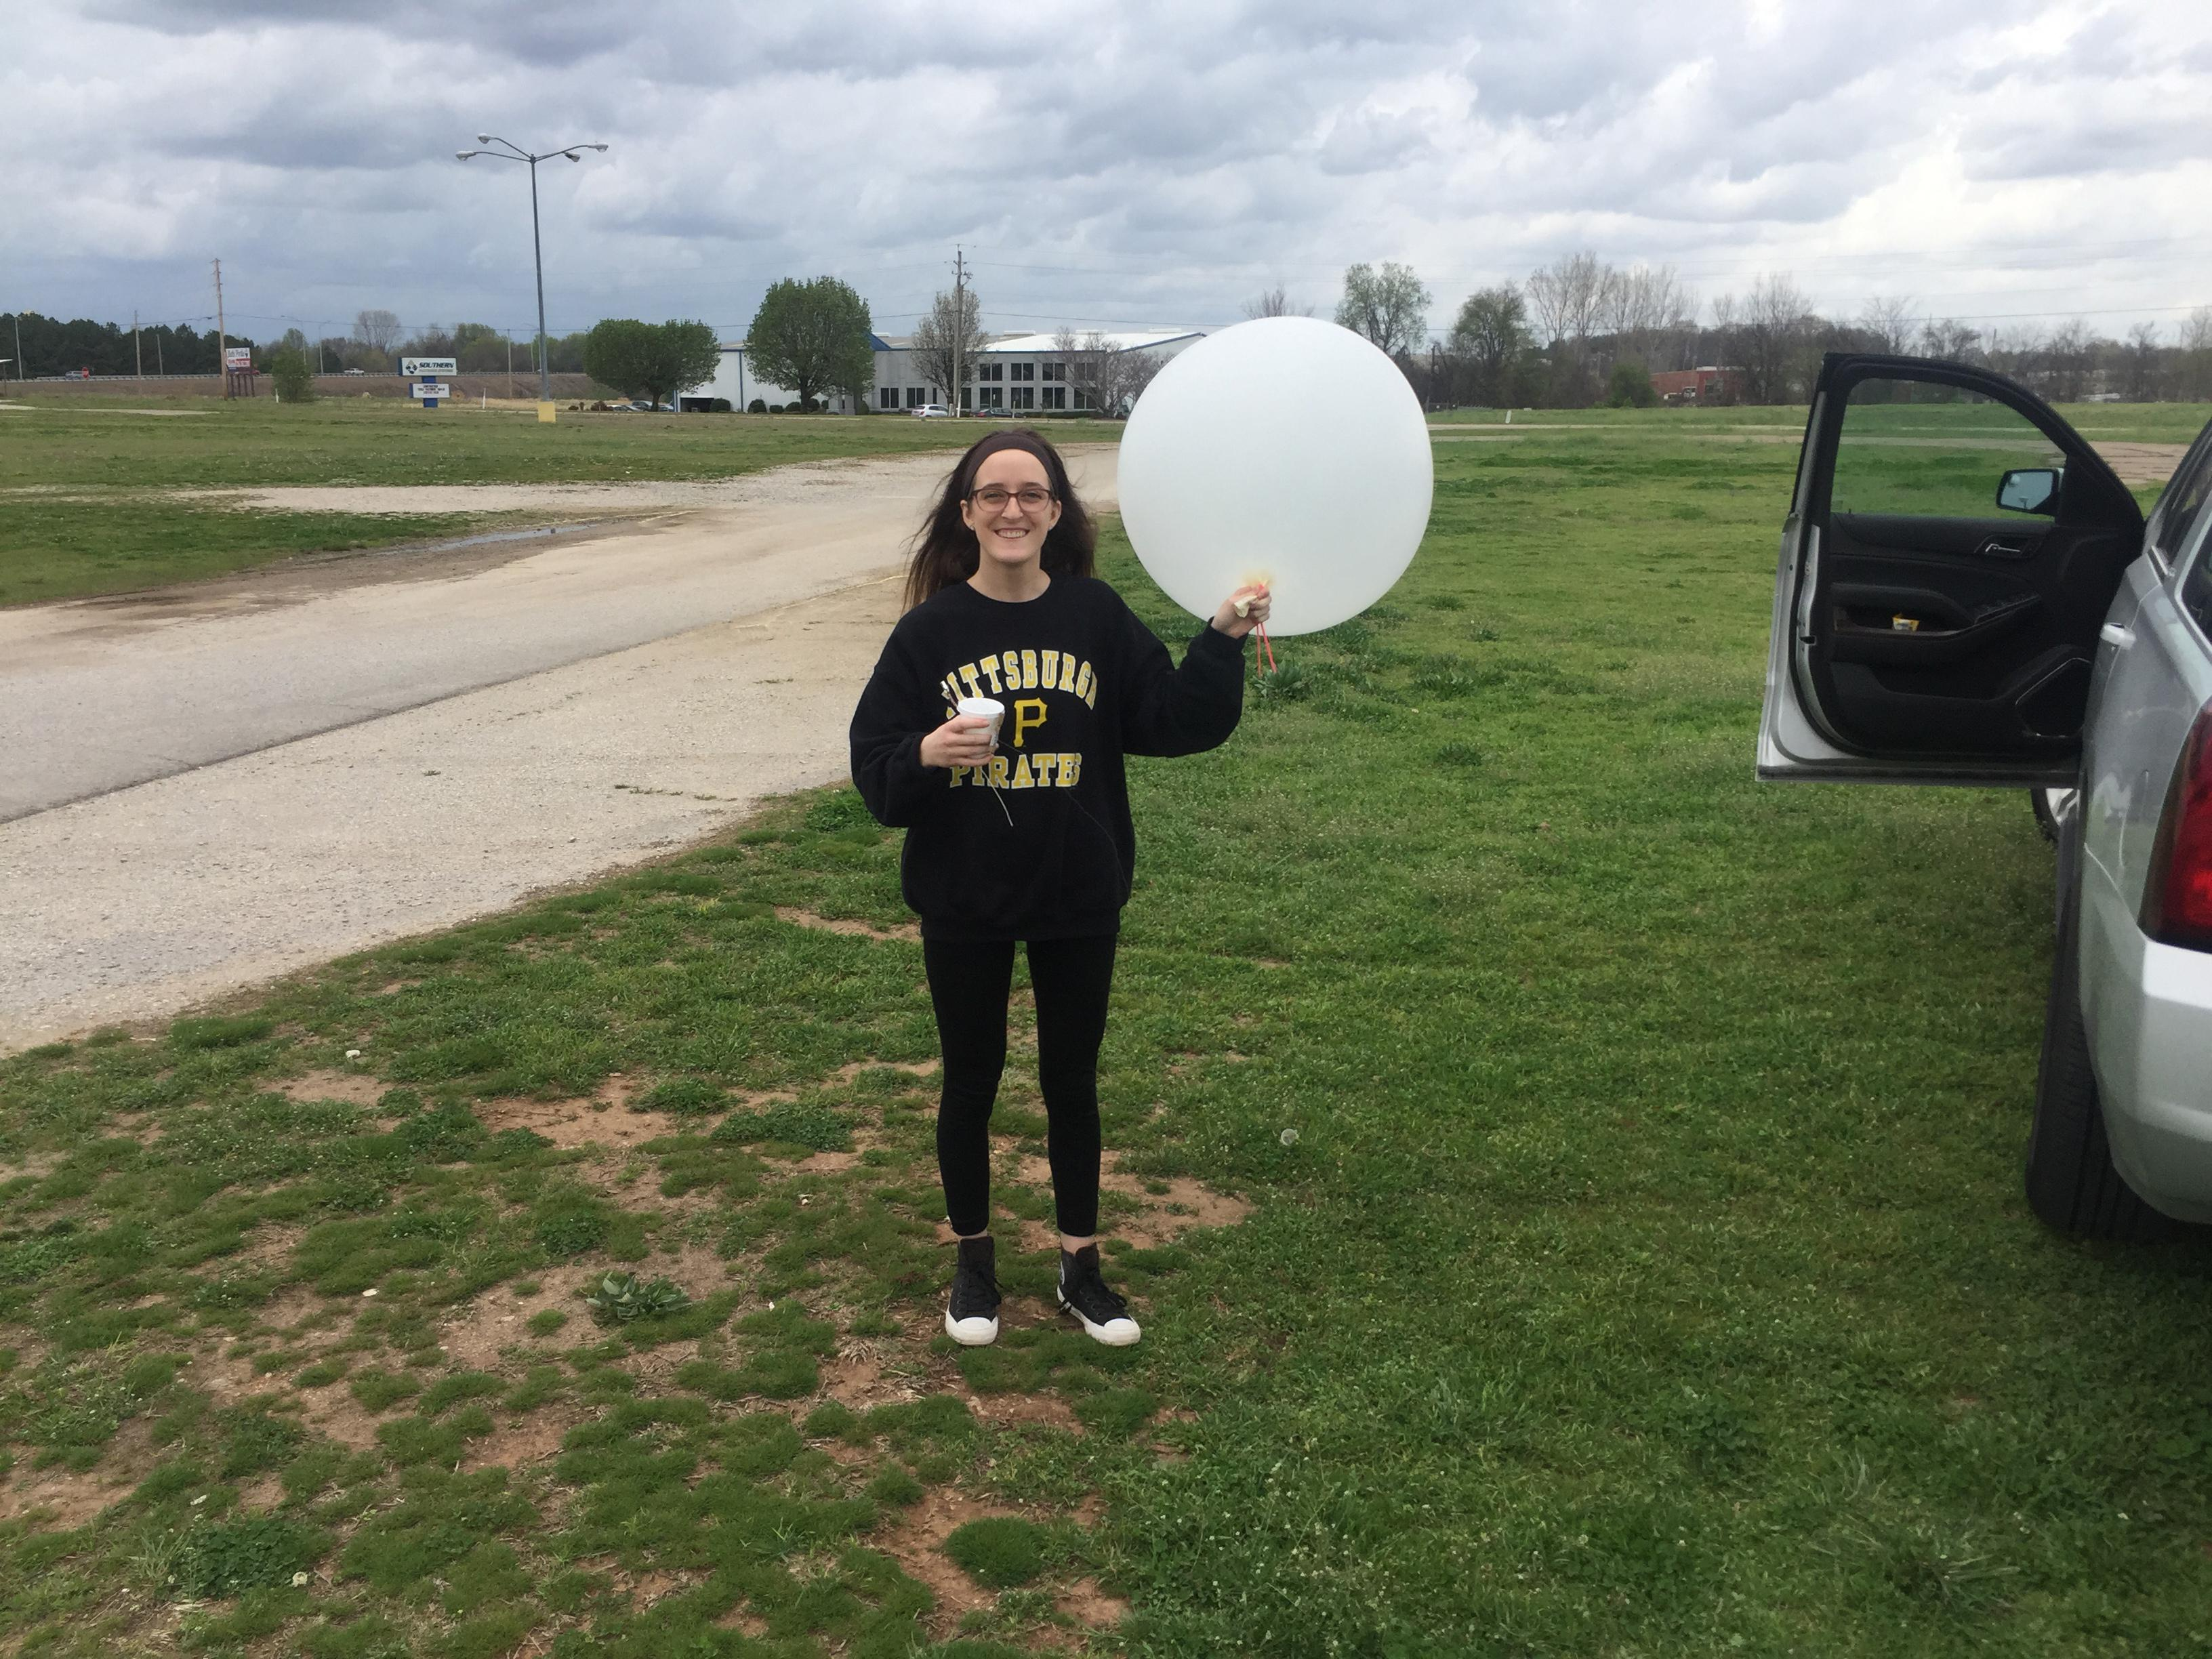 Jessica Bozell studies tornado formation at Purdue University.